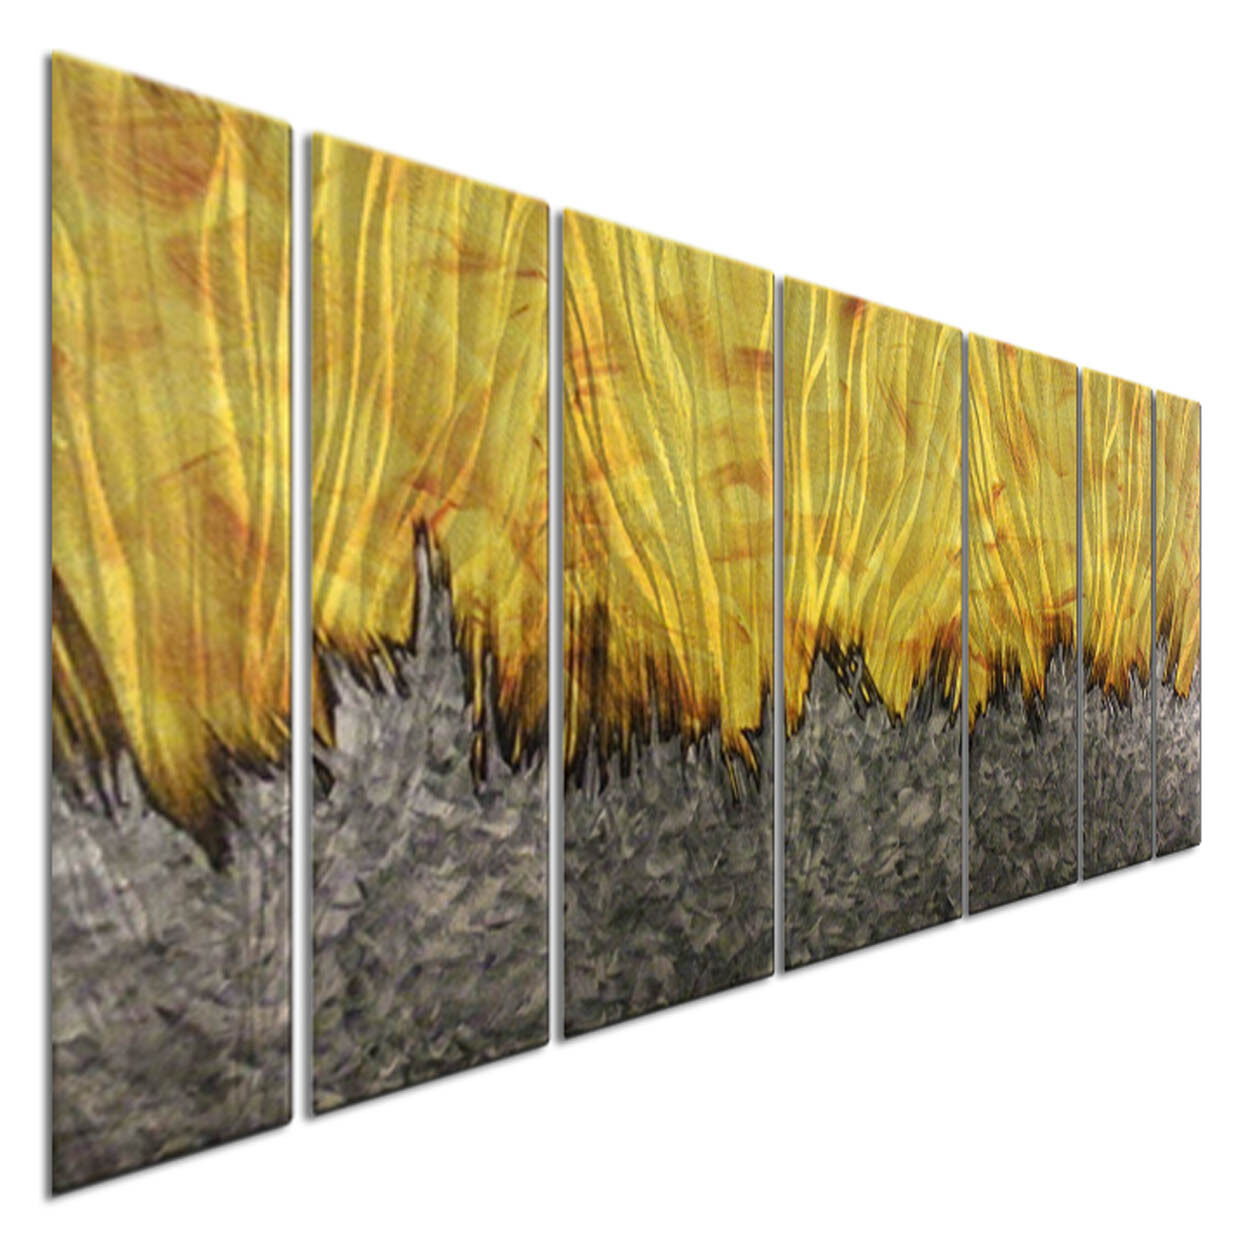 MODERN WALL ART Justin Strom Metal Wall Sculpture Abstract Artwork ...